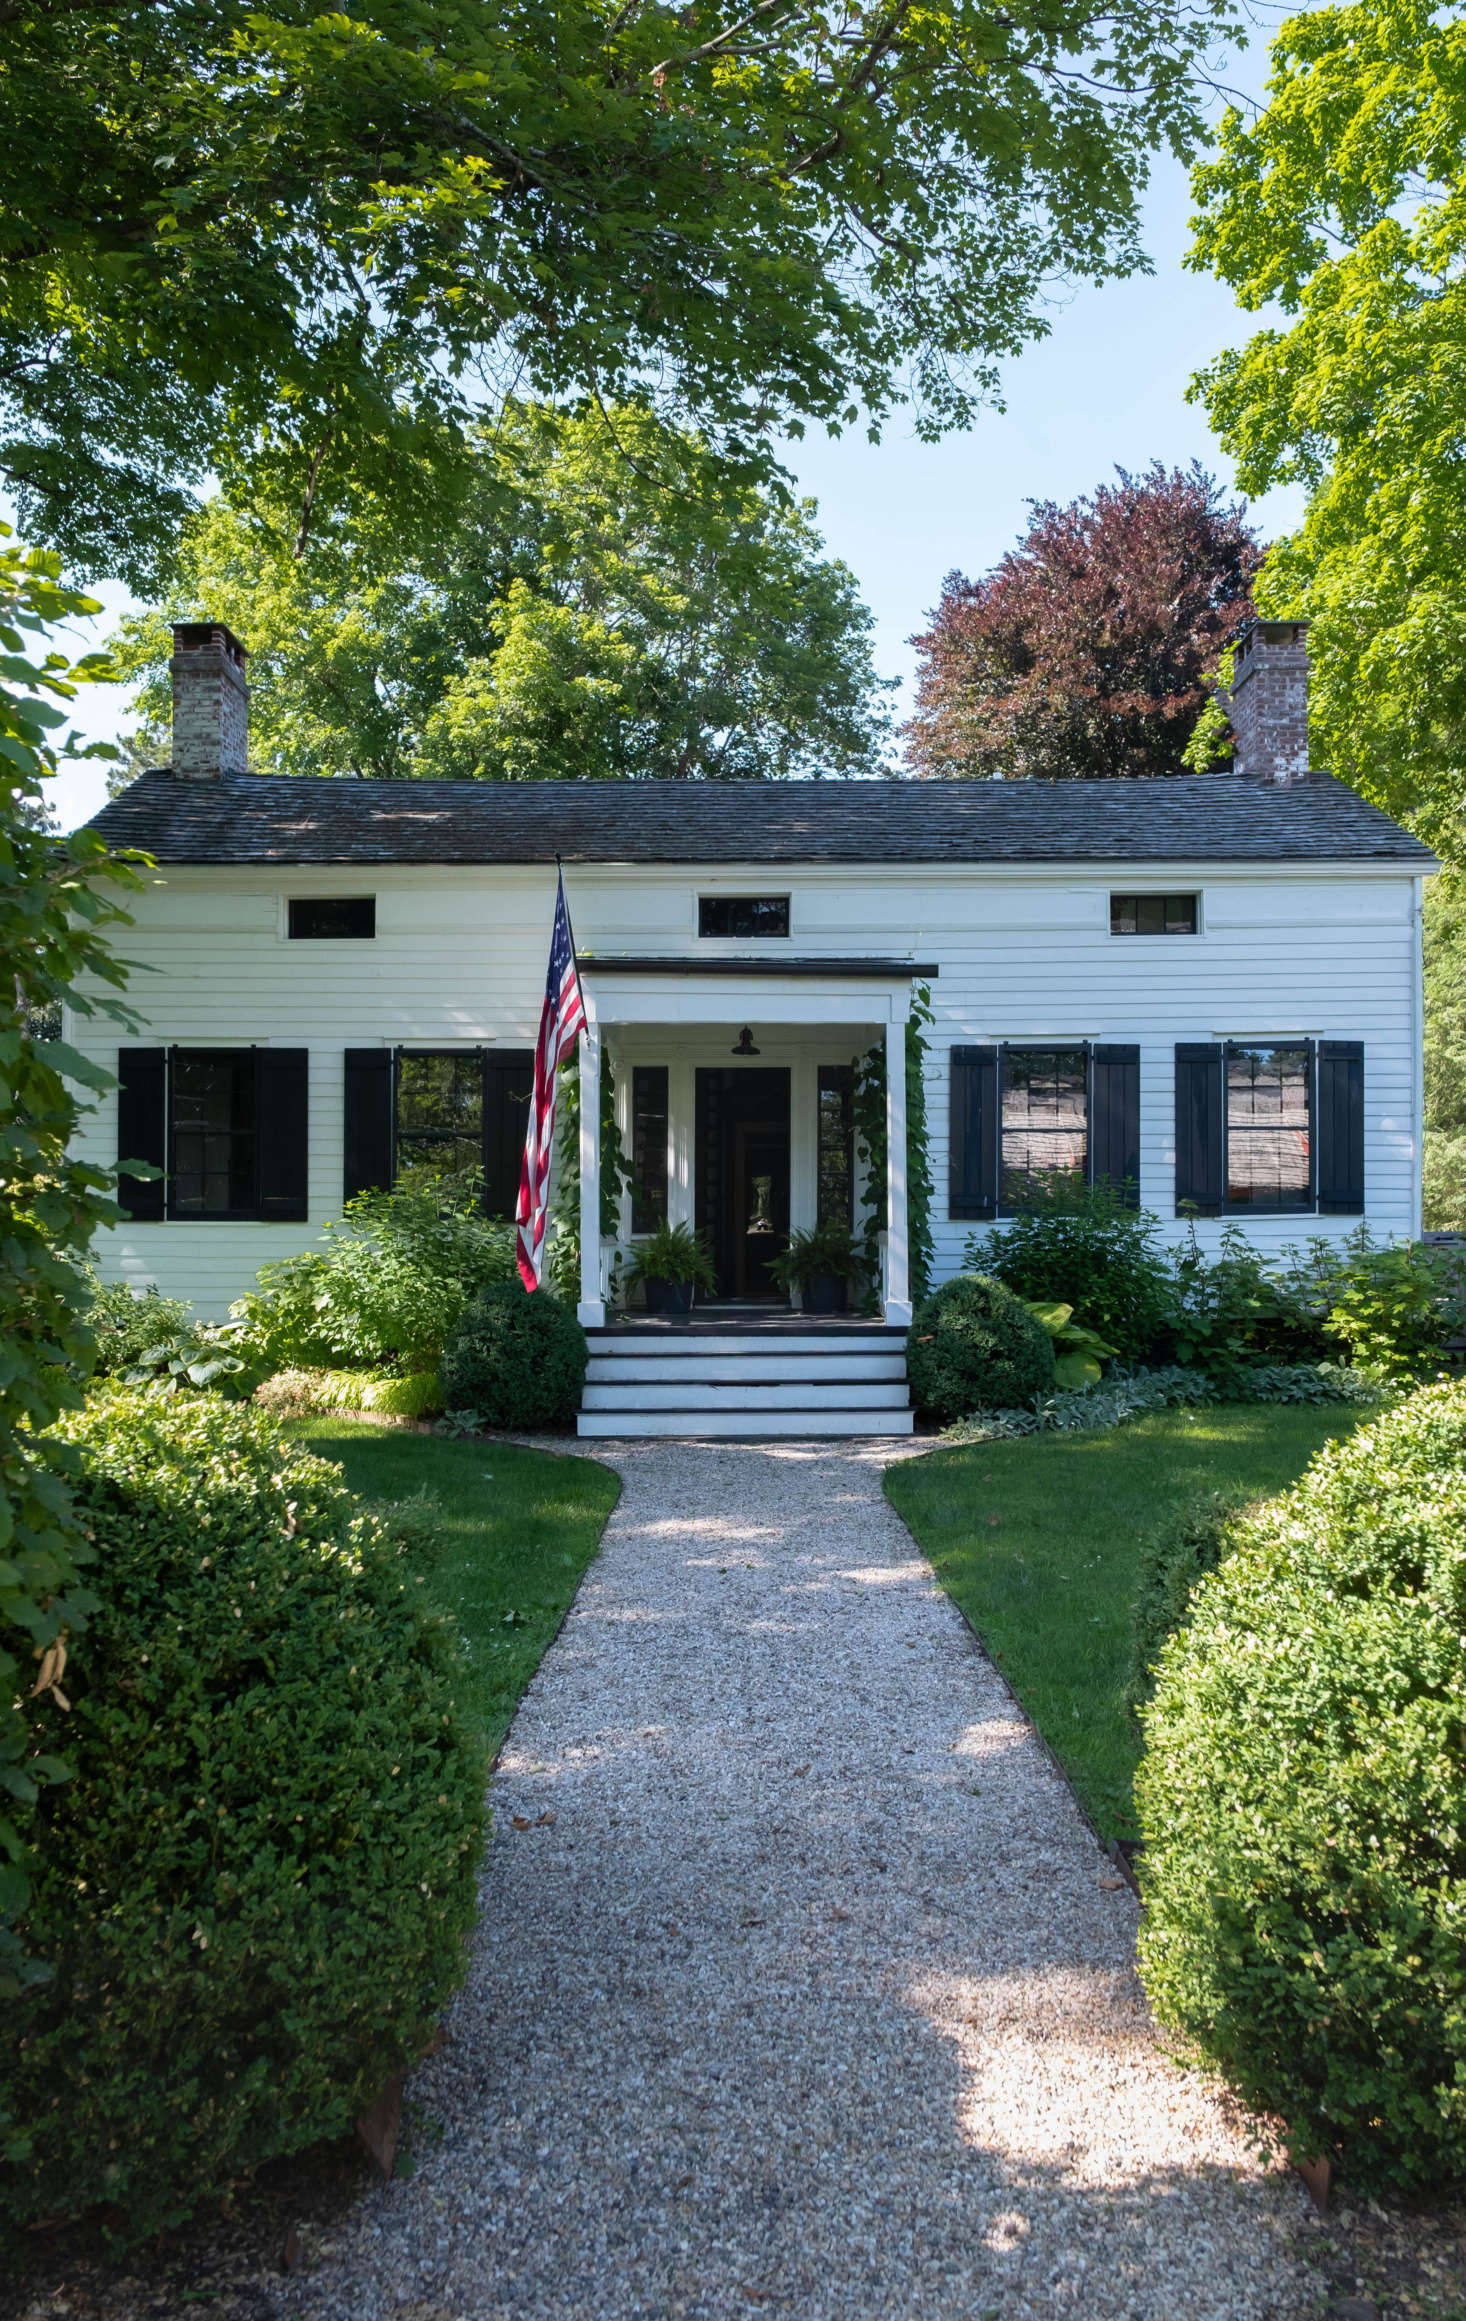 The circa-30 house is set back from a main street in Claverack, where tall hedgerows abut the road and conceal the historic houses and sprawling gardens behind.